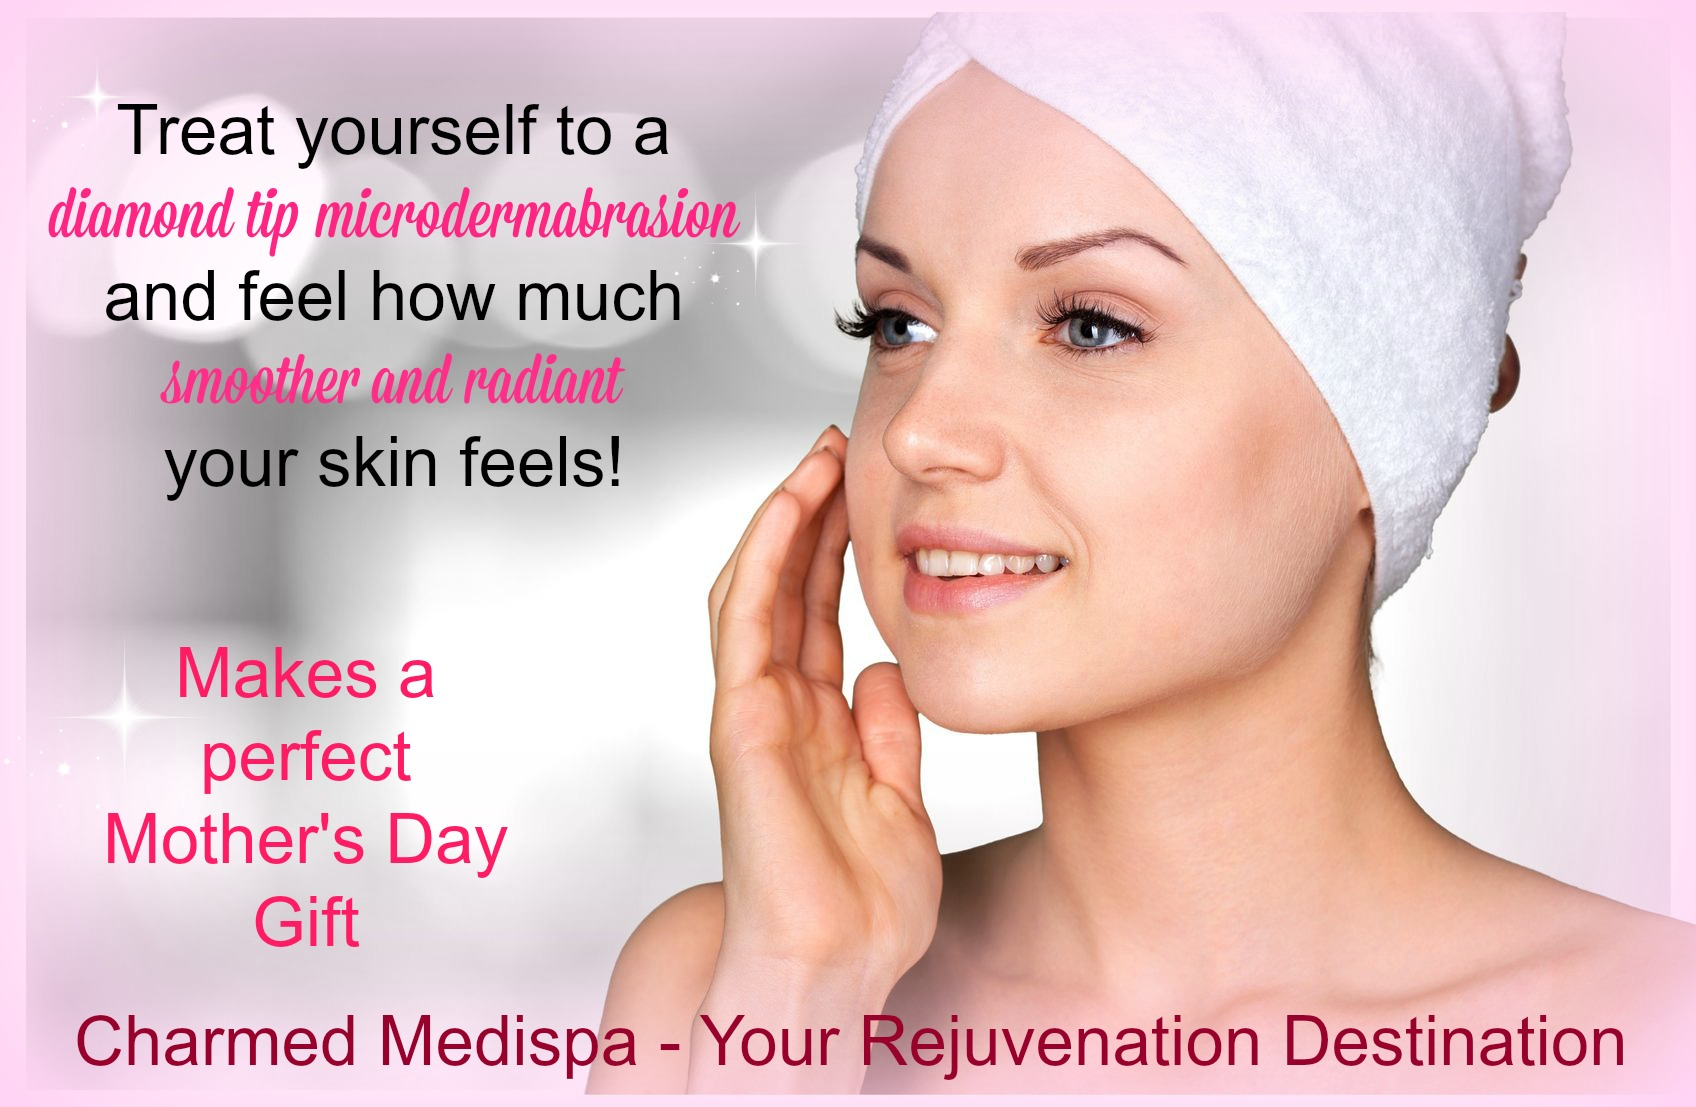 microdermabrasion ad